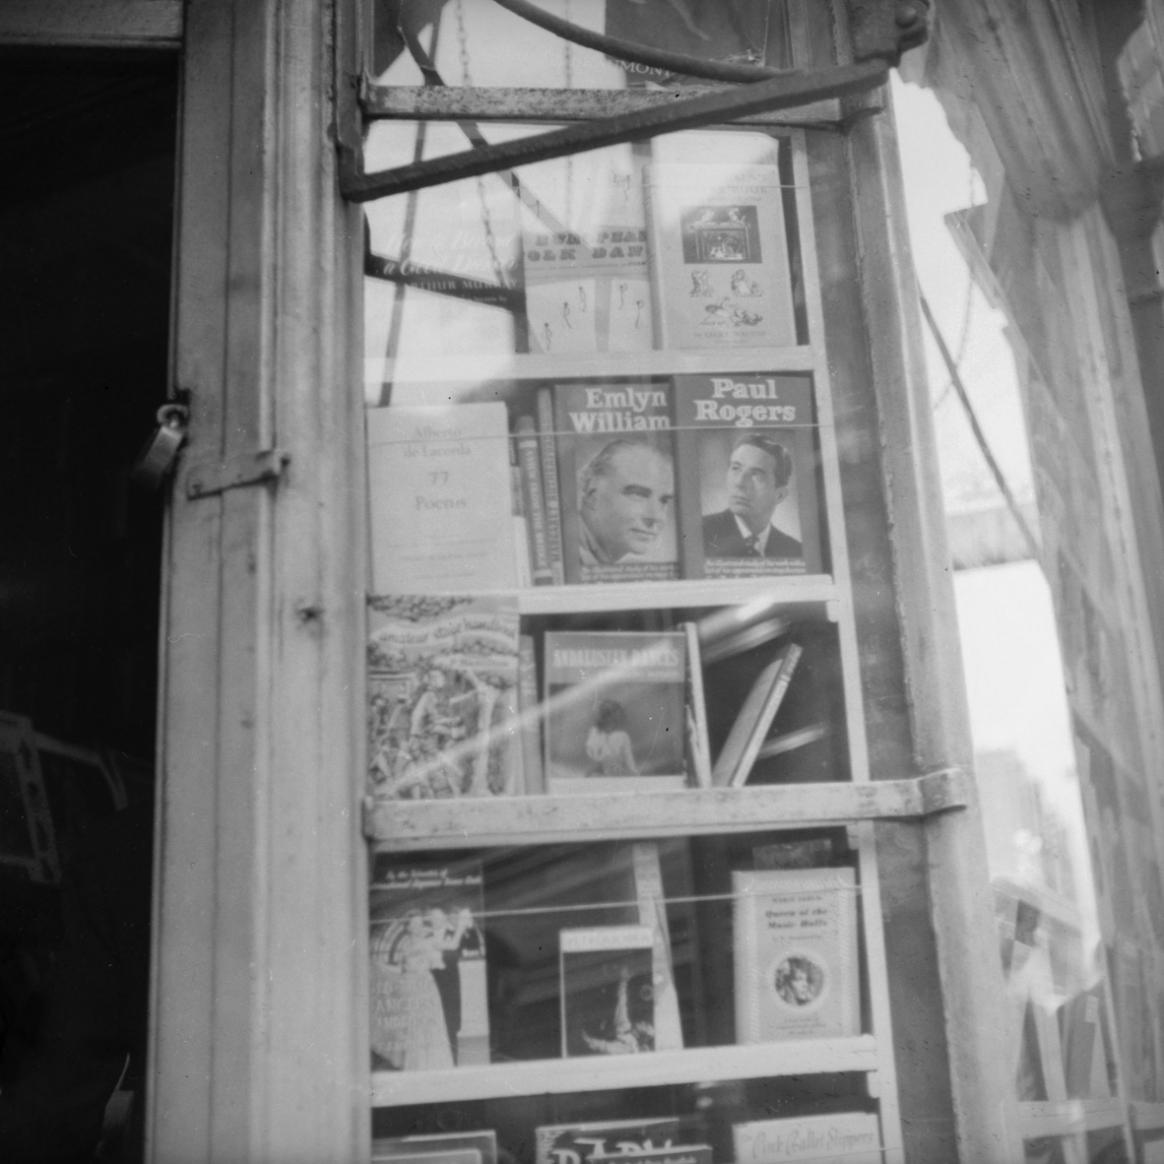 Display window in Cyril Beaumont's store with a copy of 77 Poems, Charing Cross Road, London, 1955